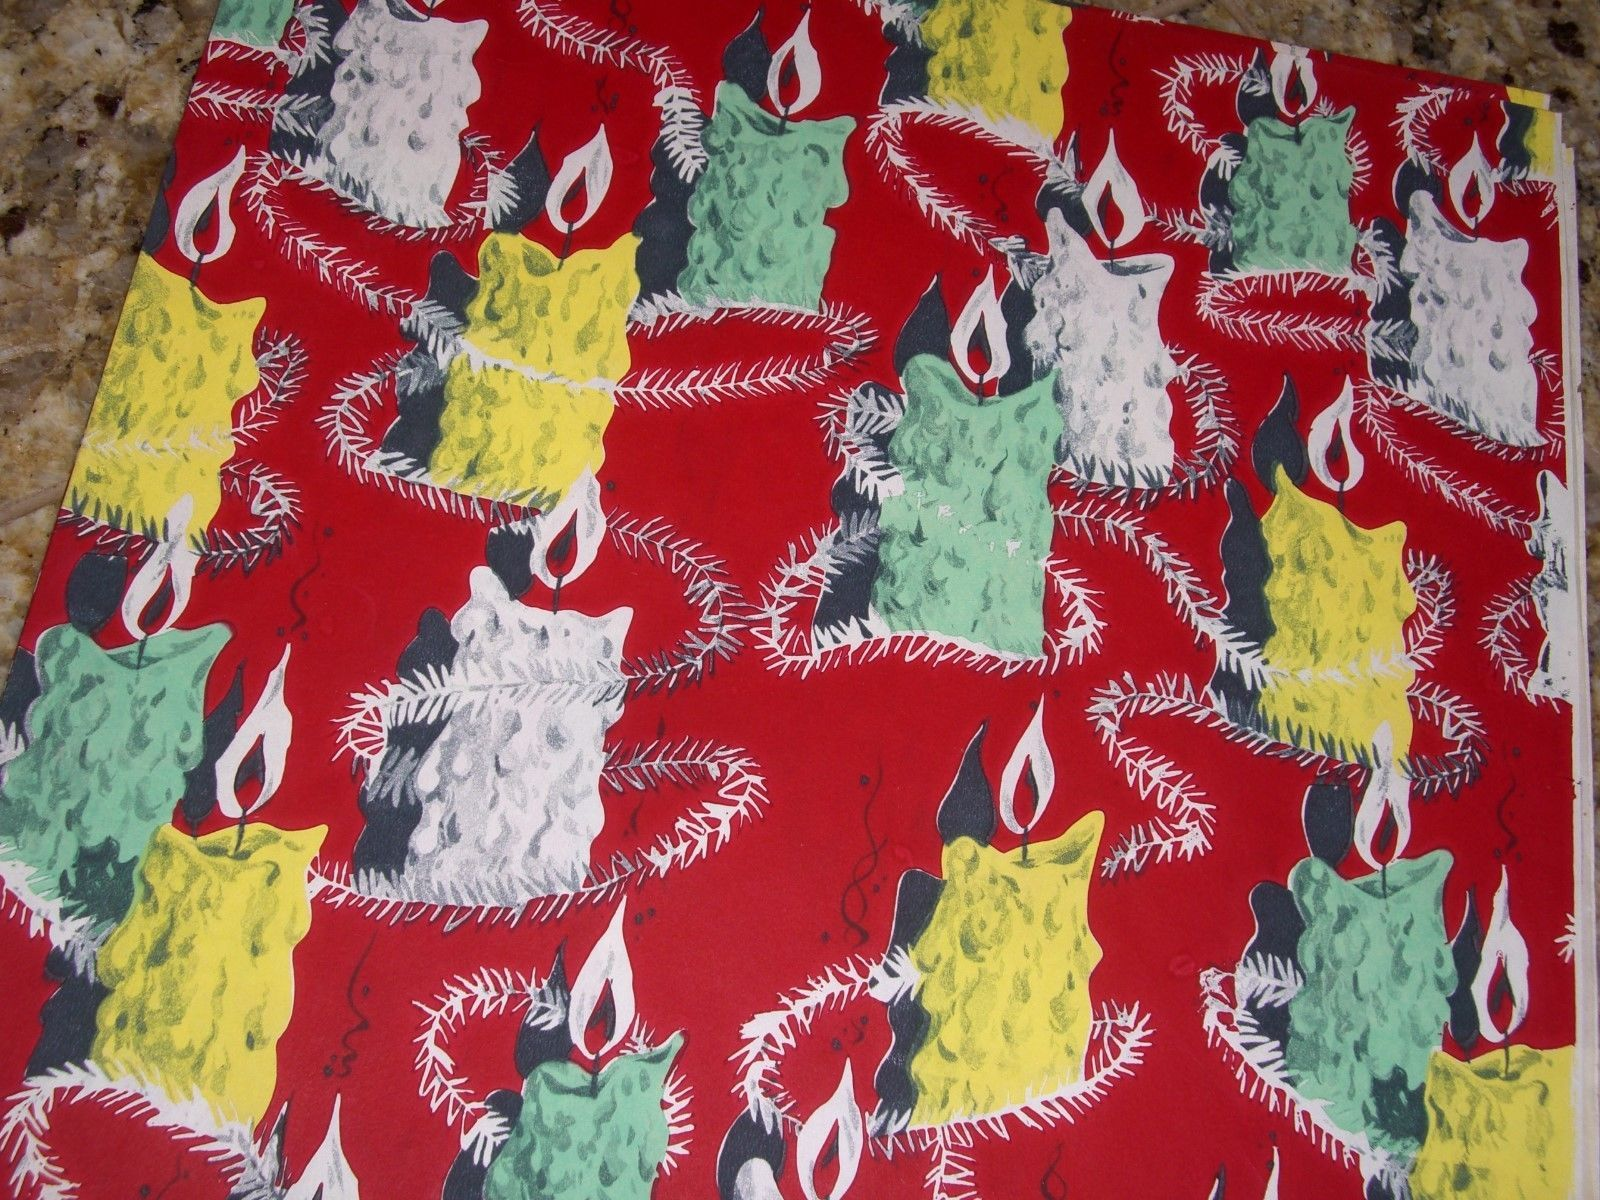 Vintage Christmas Wrapping Paper Large Candles Unused Gift Wrap ...